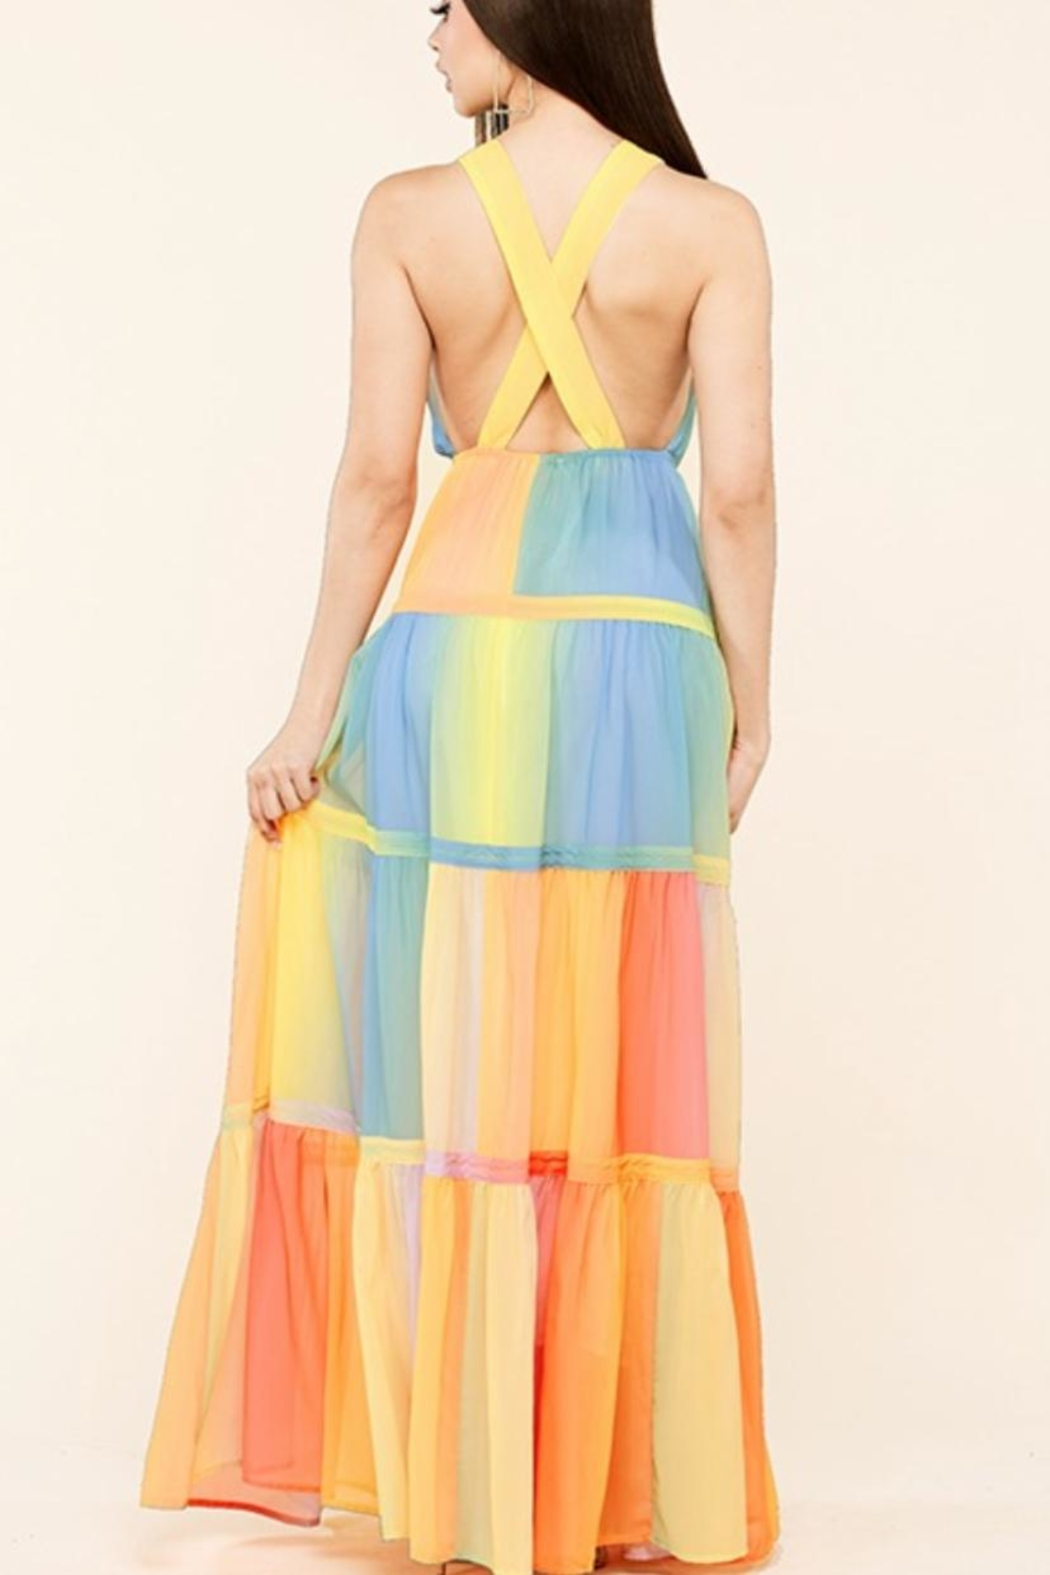 Latiste Multicolored Maxi Dress - Front Full Image